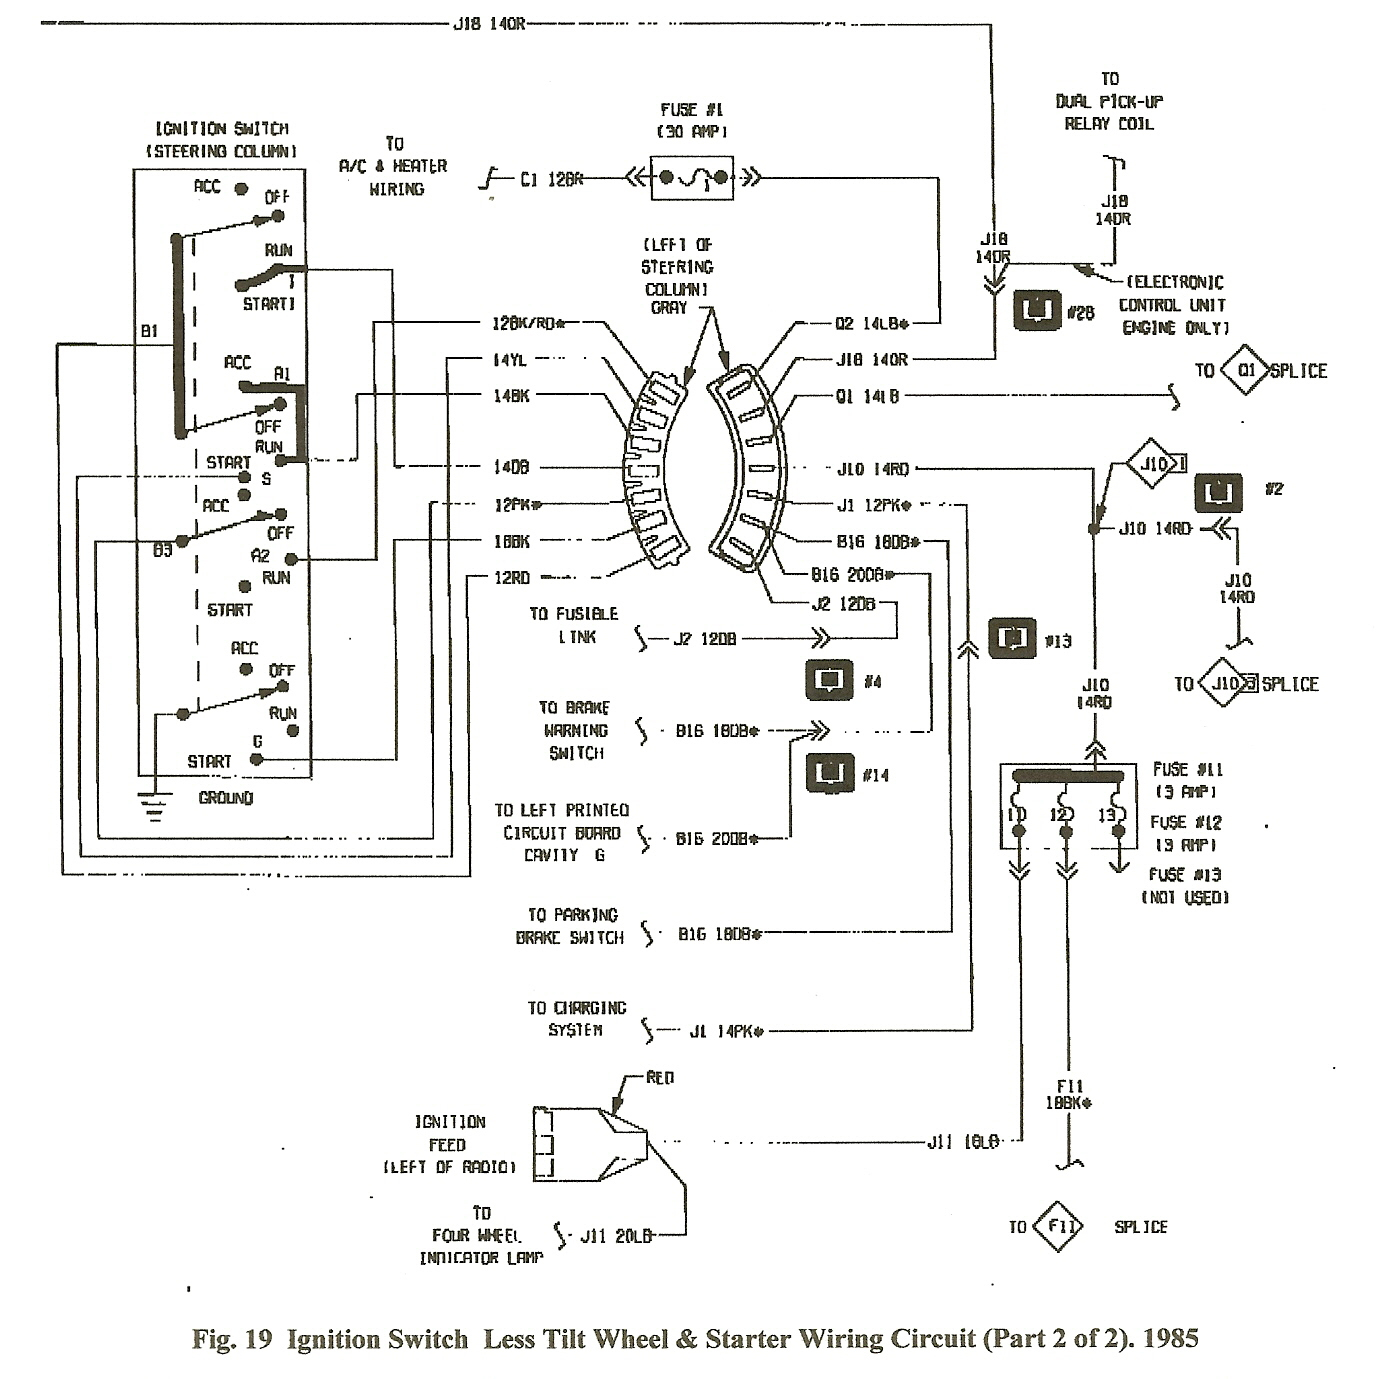 1987 Dodge Ram 150 Wiring Diagram | Manual E-Books - Dodge Ram Wiring Harness Diagram